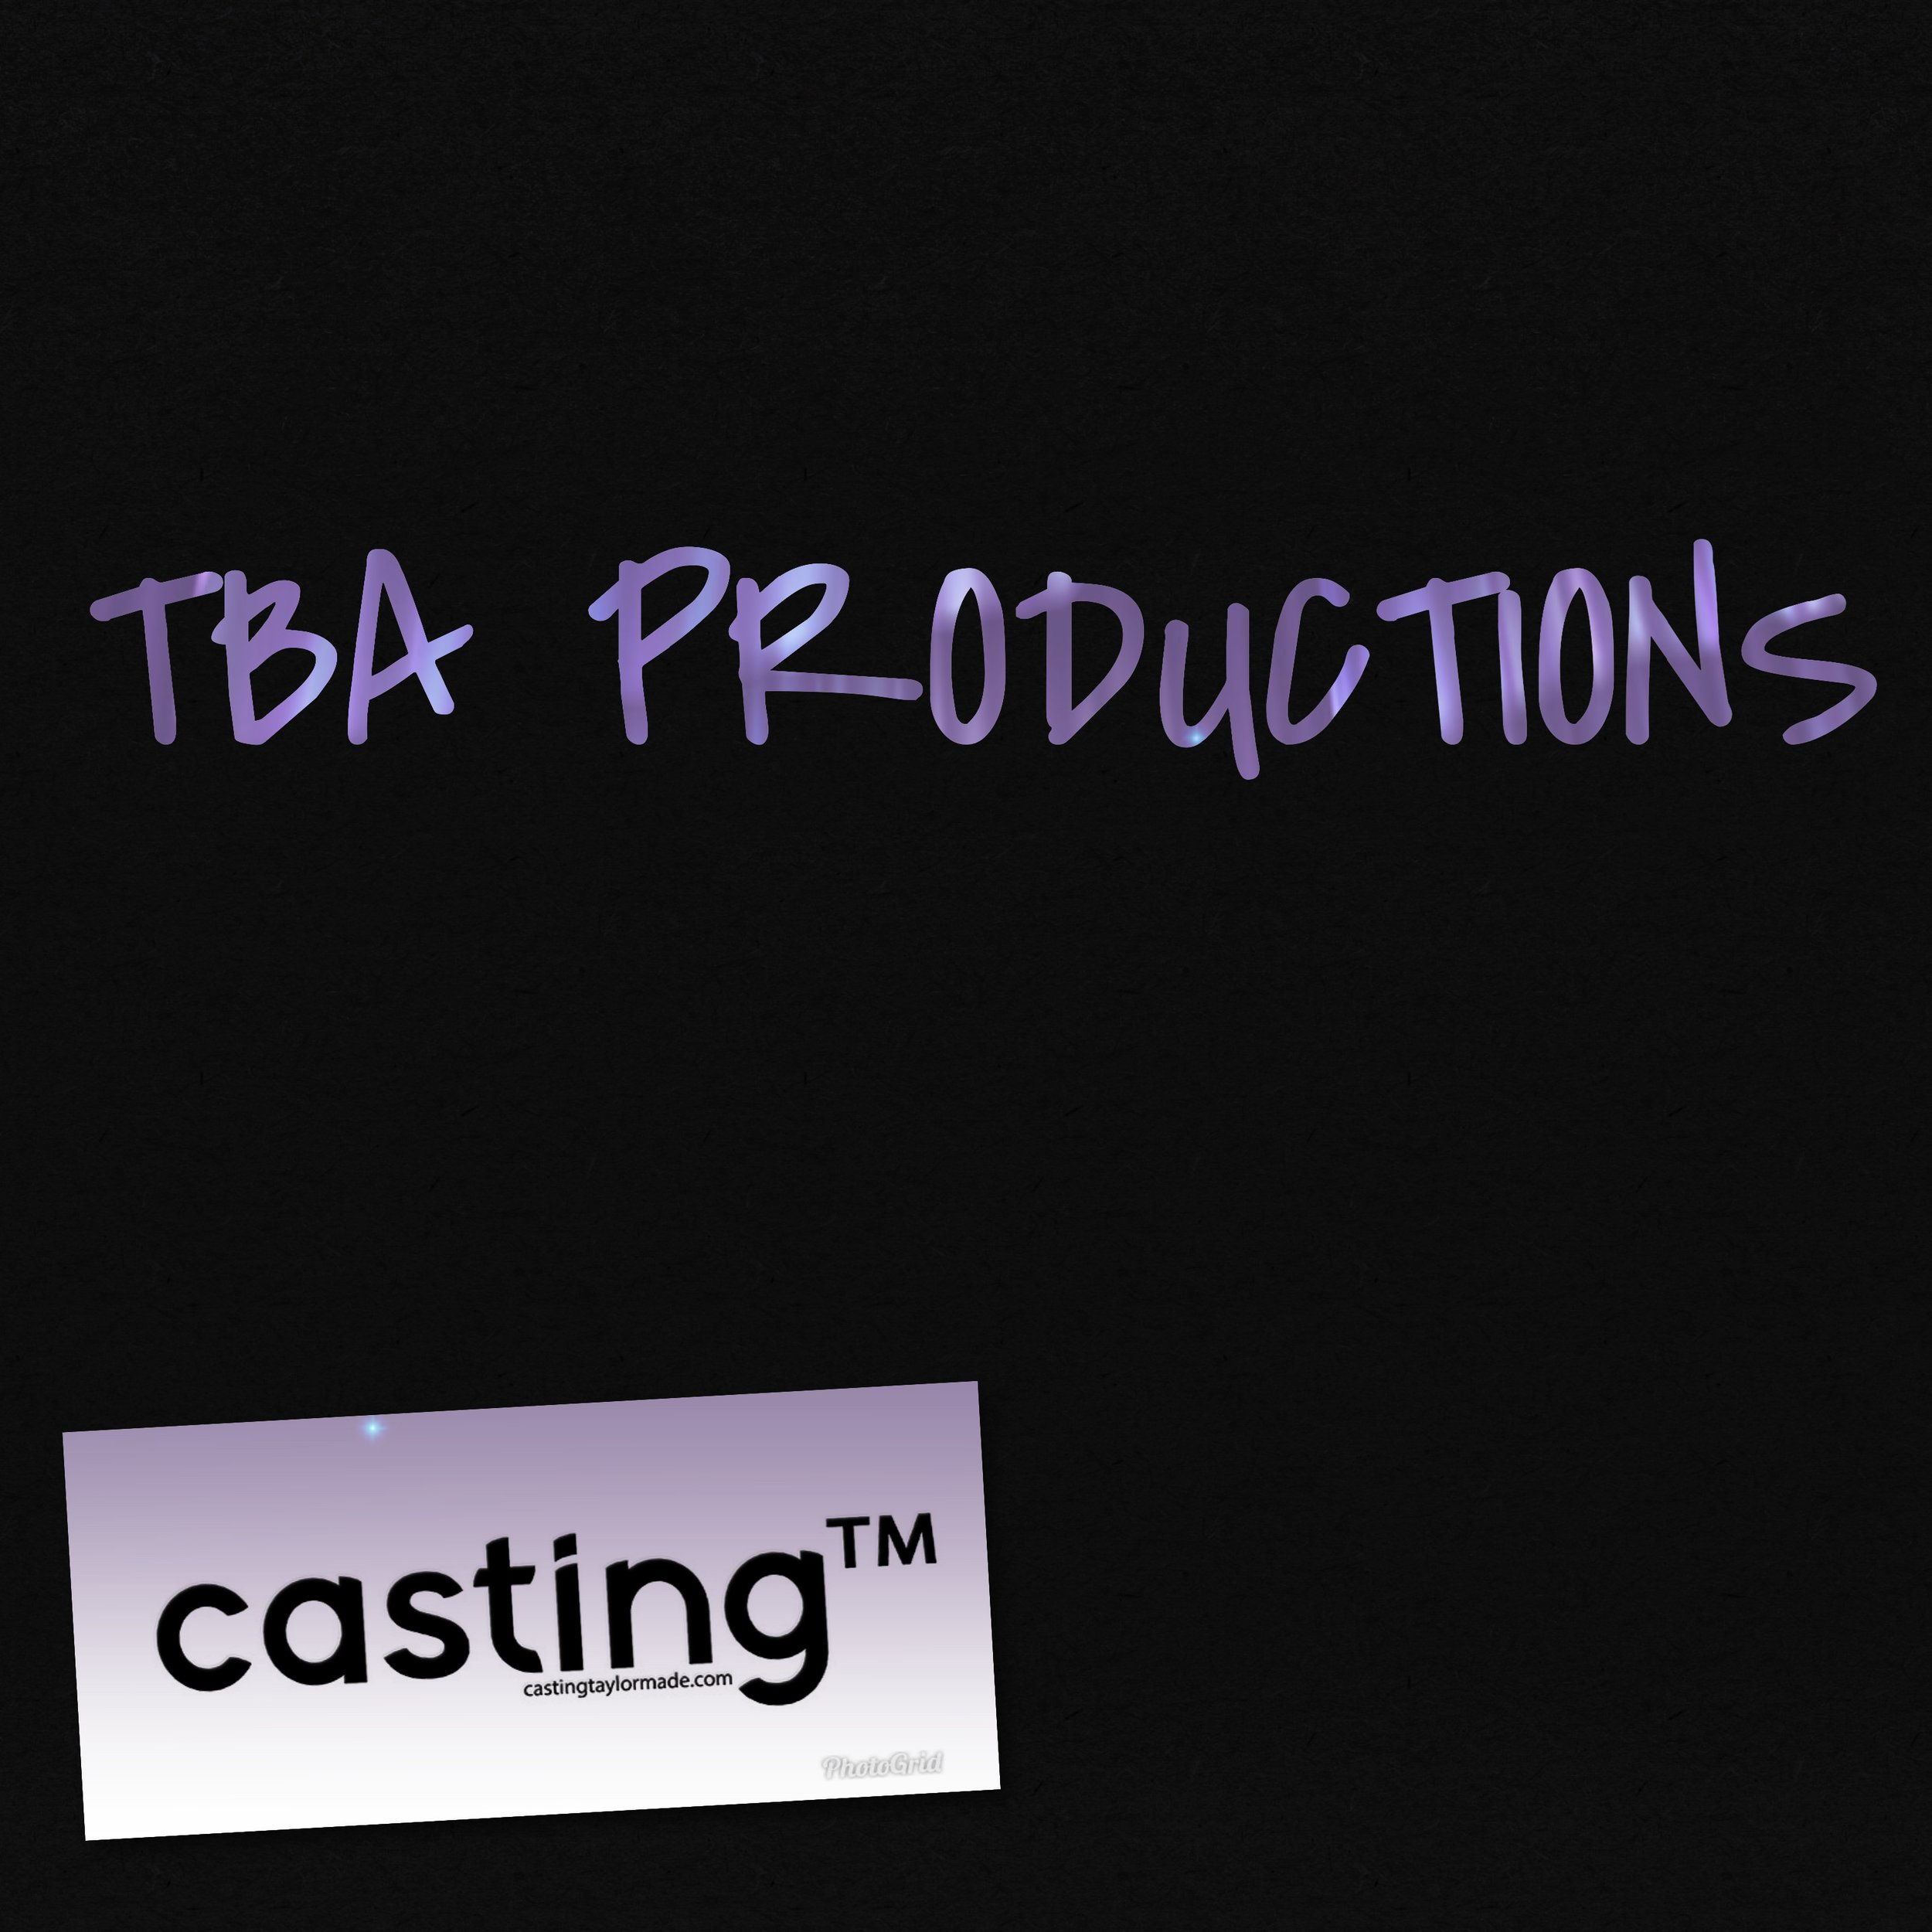 TBA Productions Logo Square.JPG